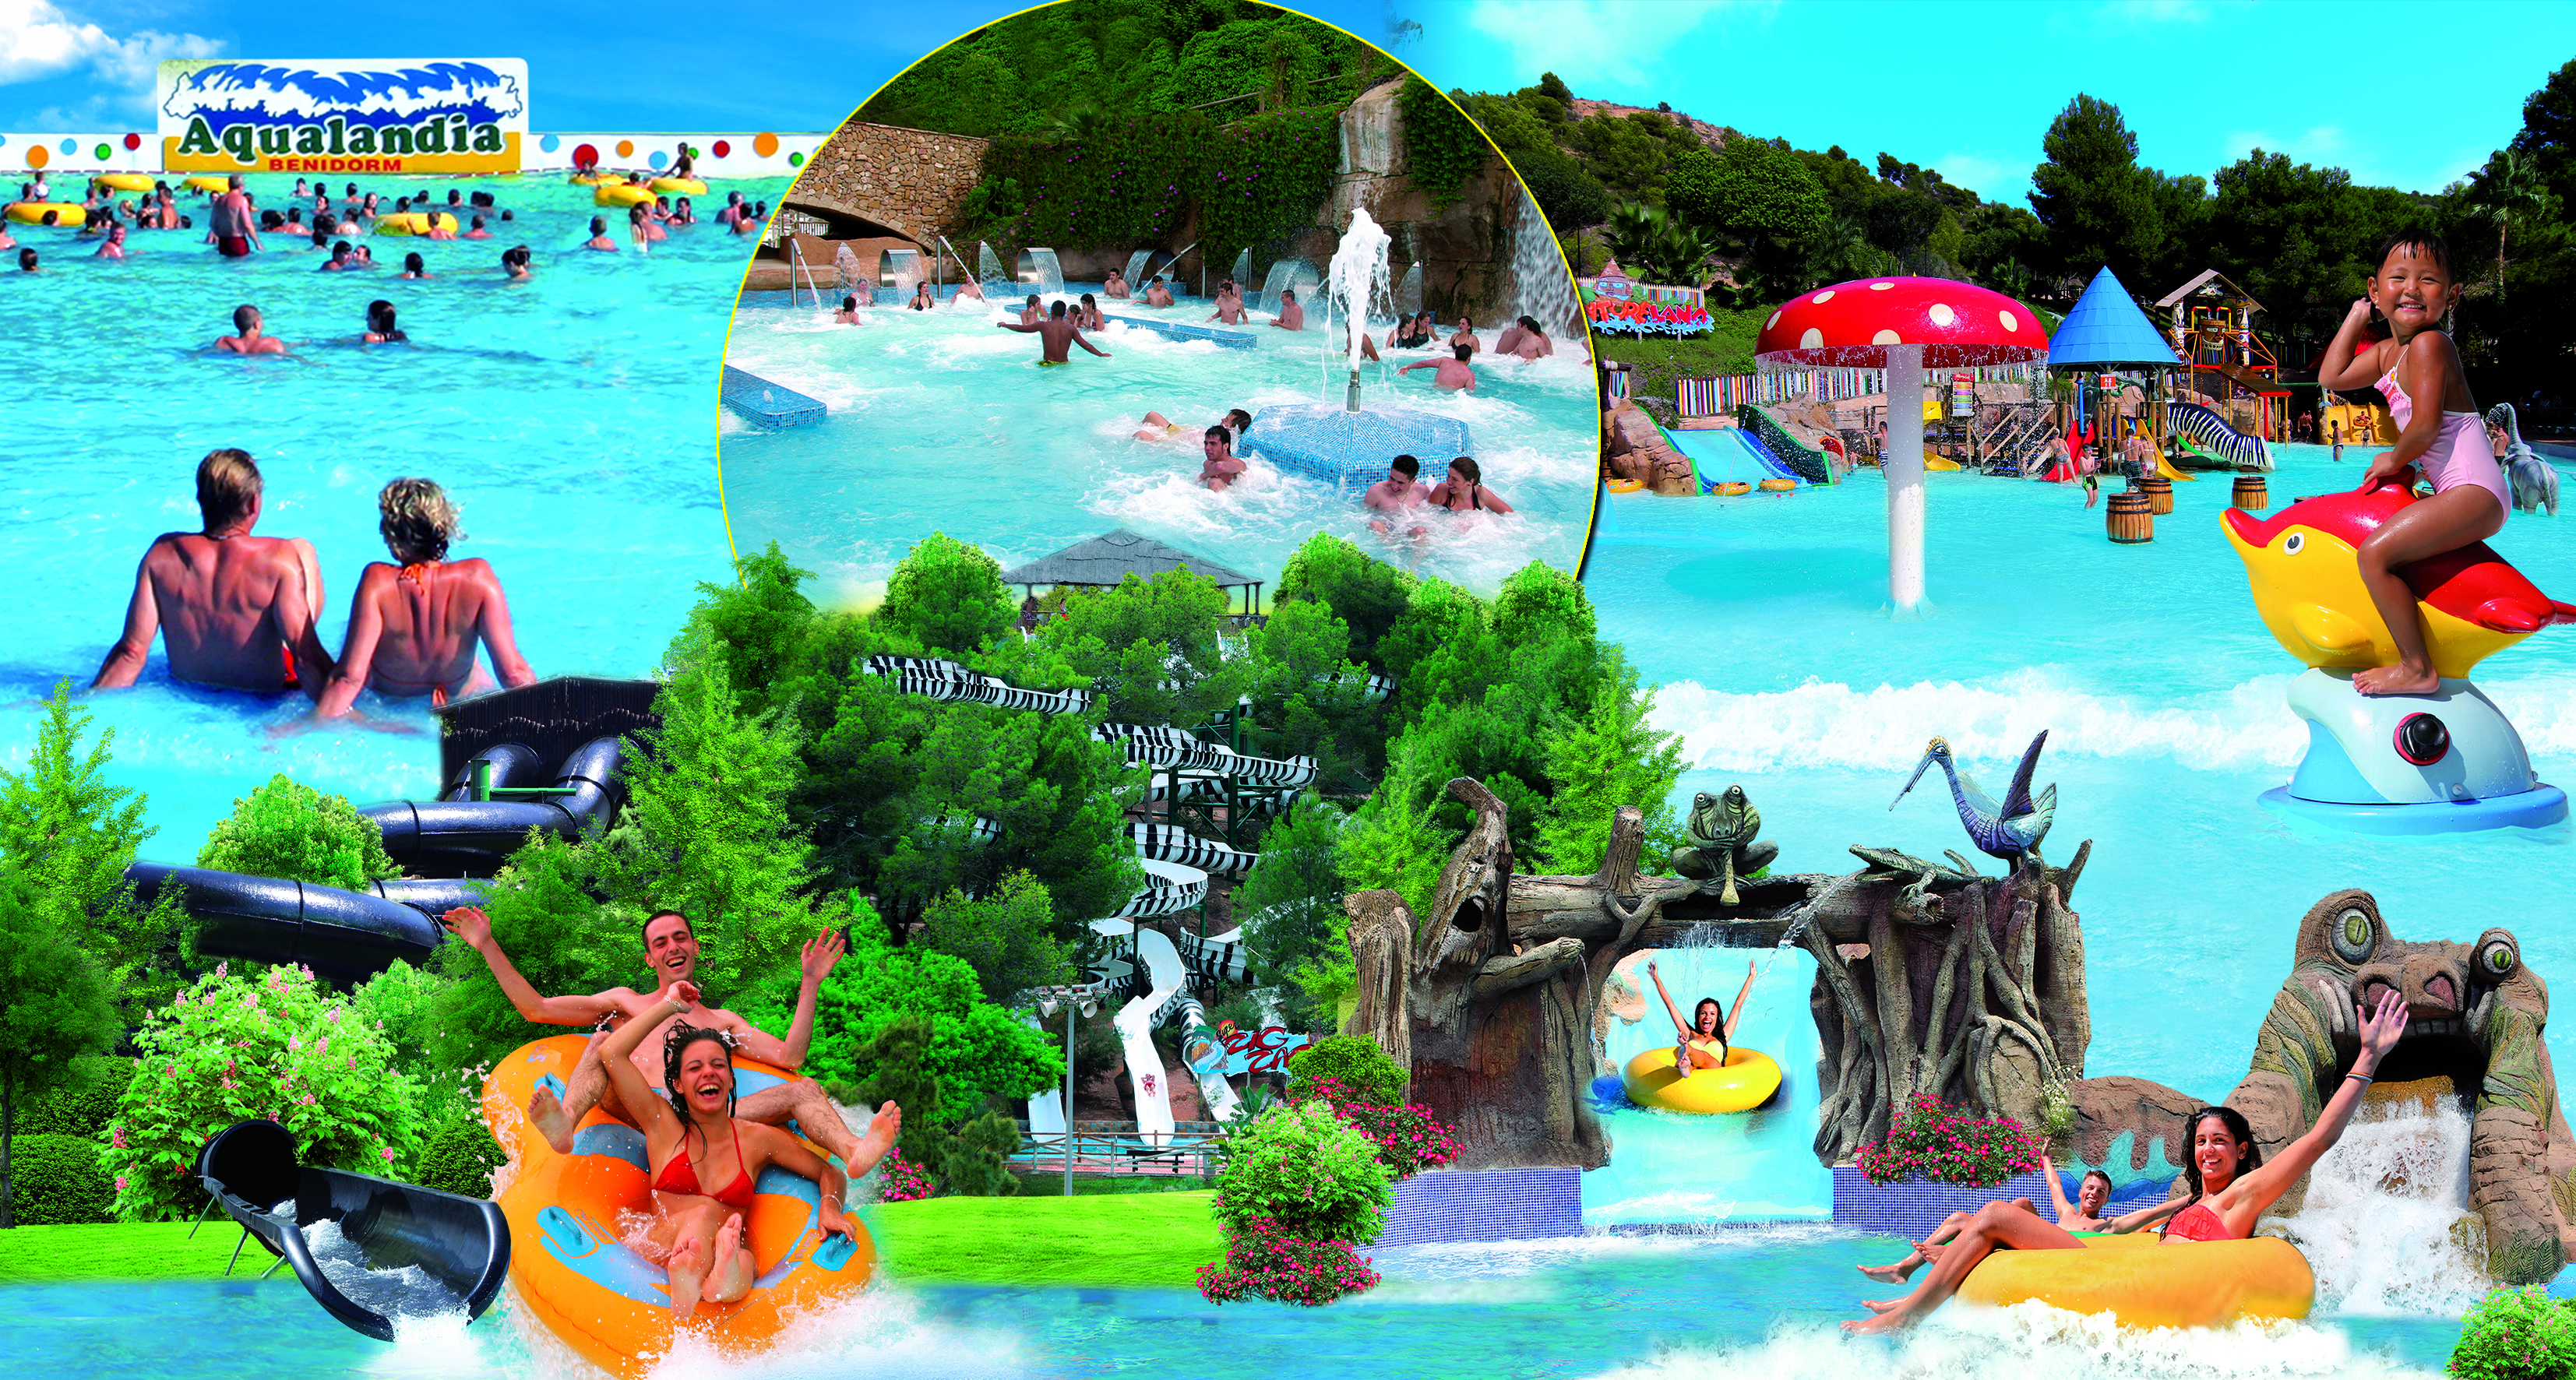 Activities for You to Enjoy at Aqualandia